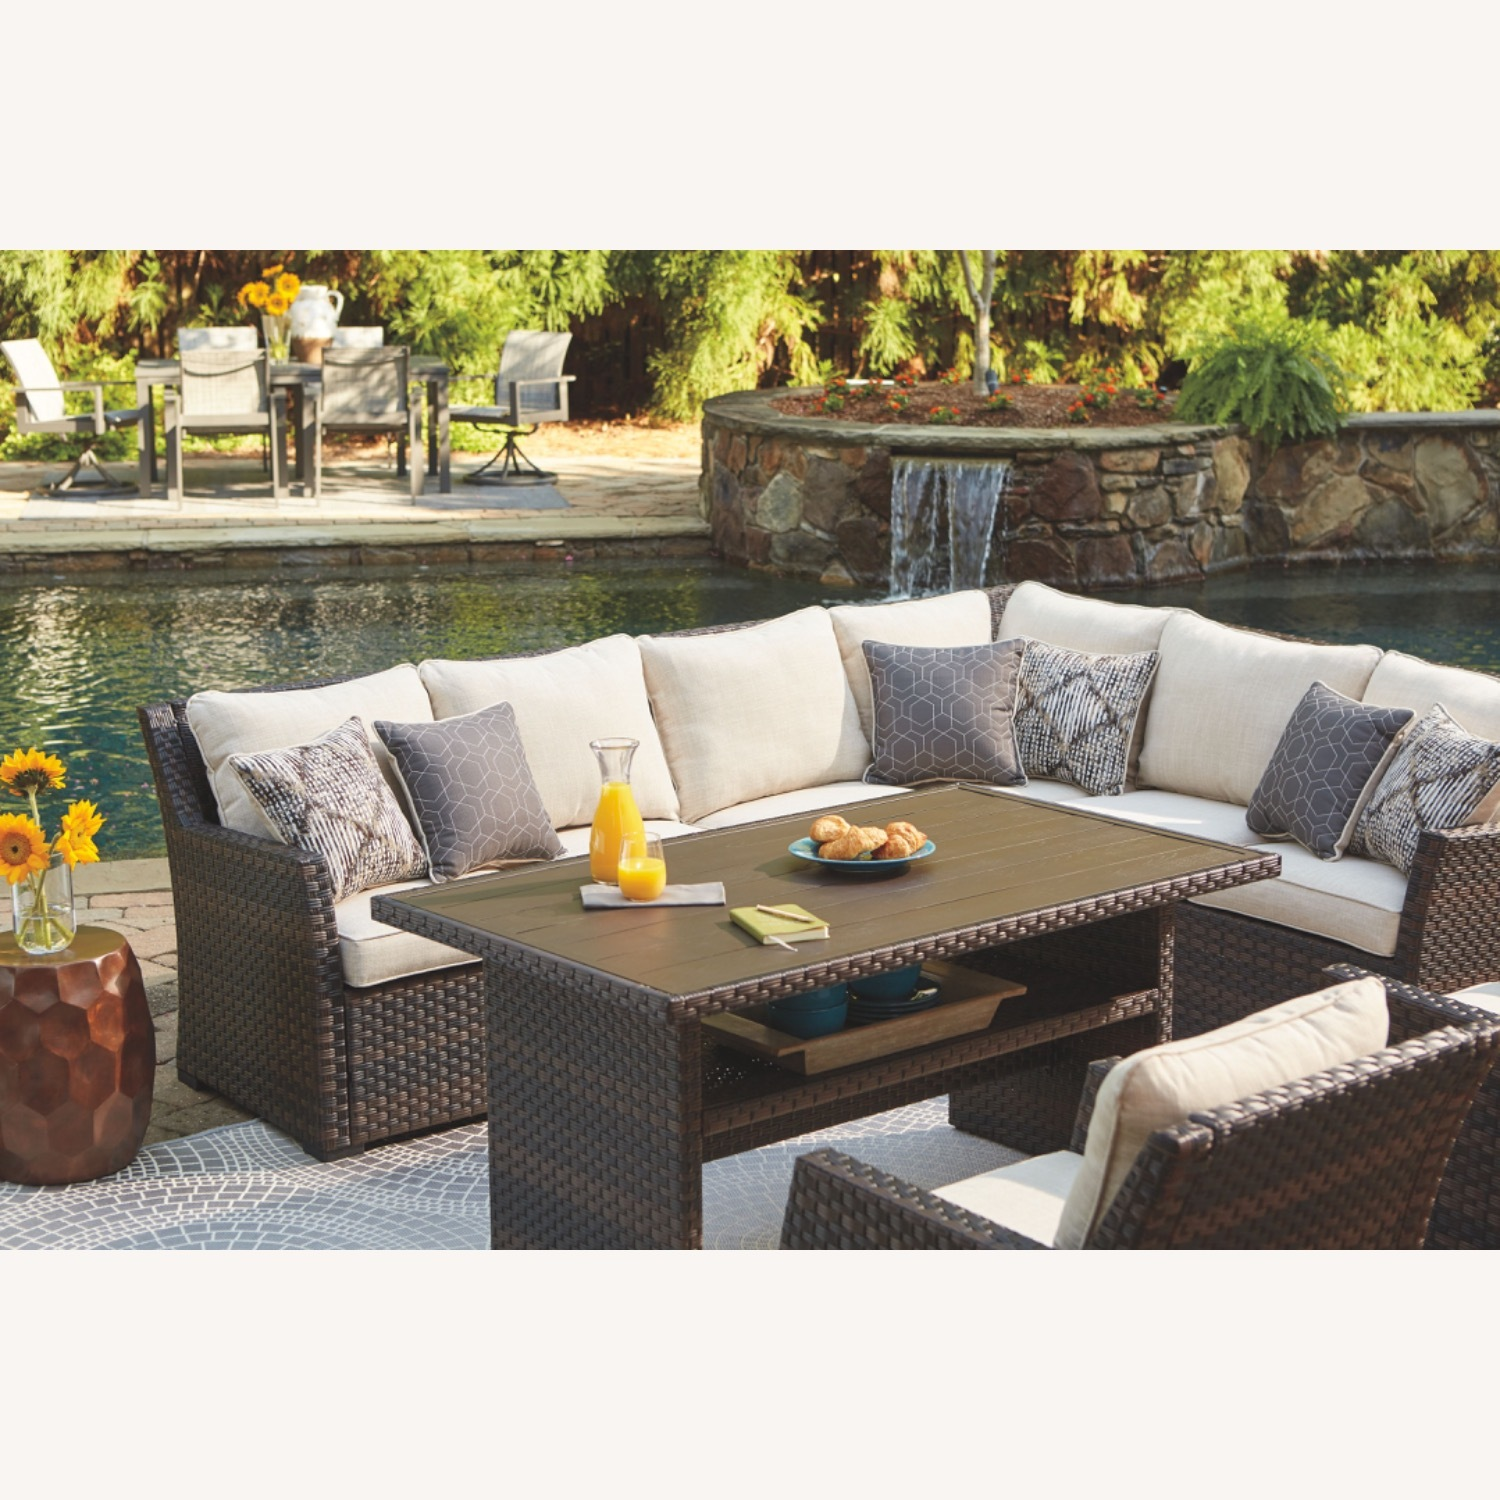 Ashley Furniture Resin Wicker Sectional - image-2